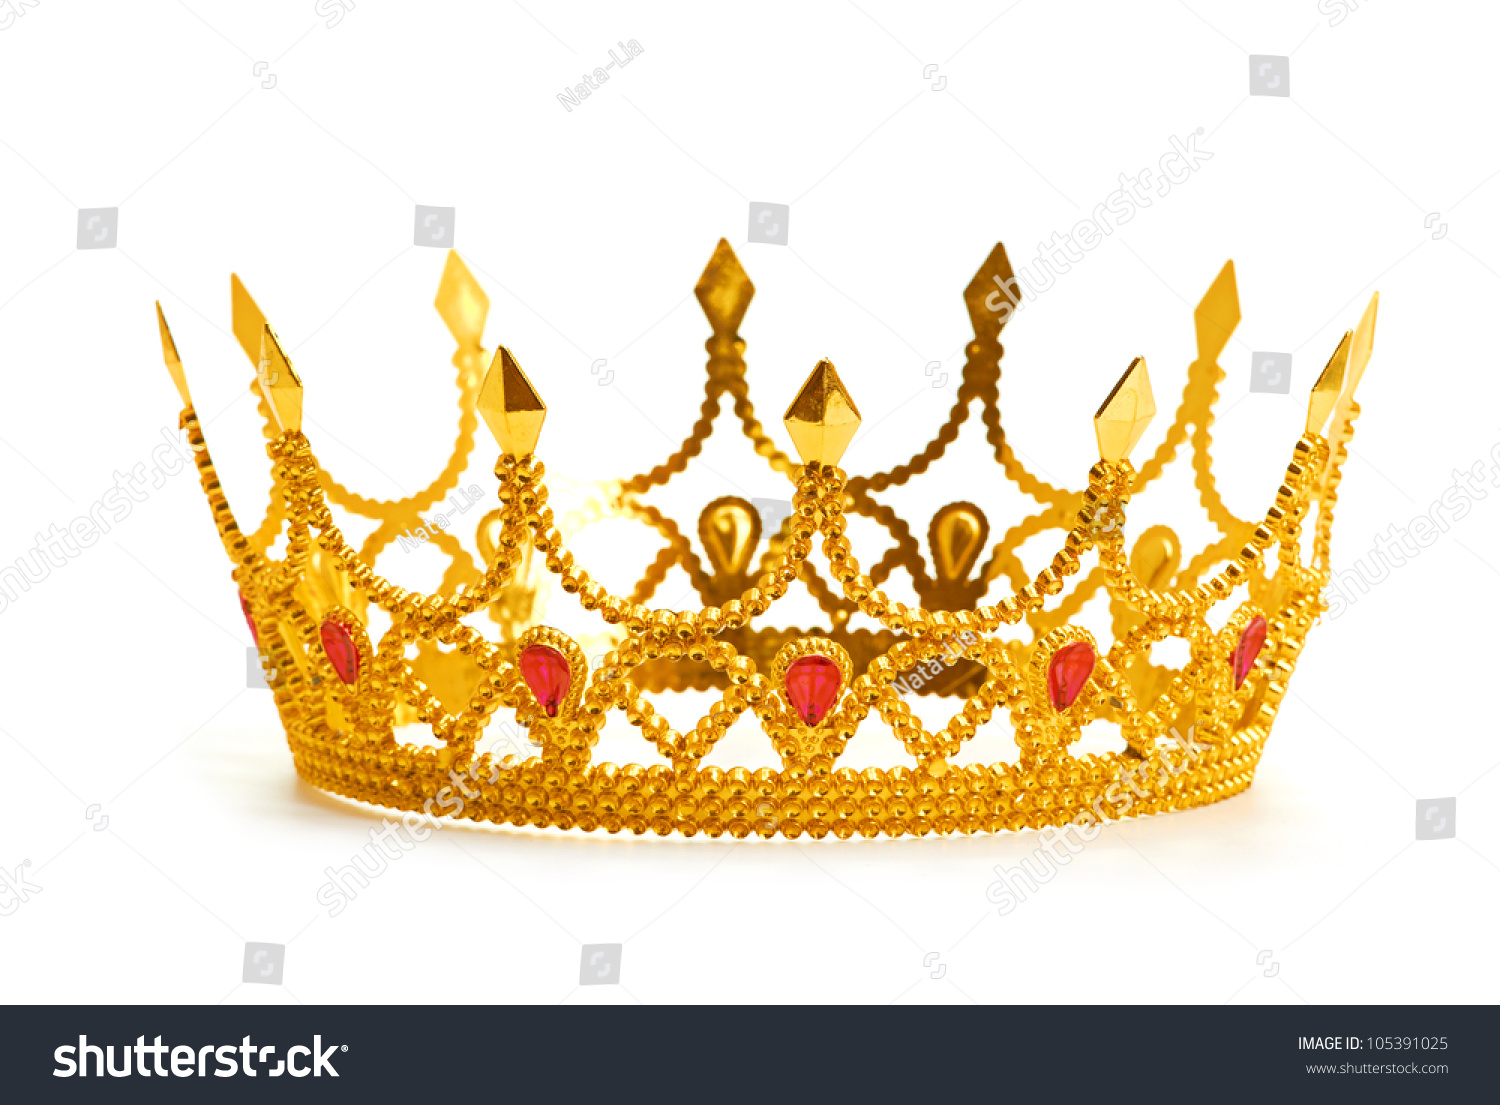 Gold crown background - photo#17